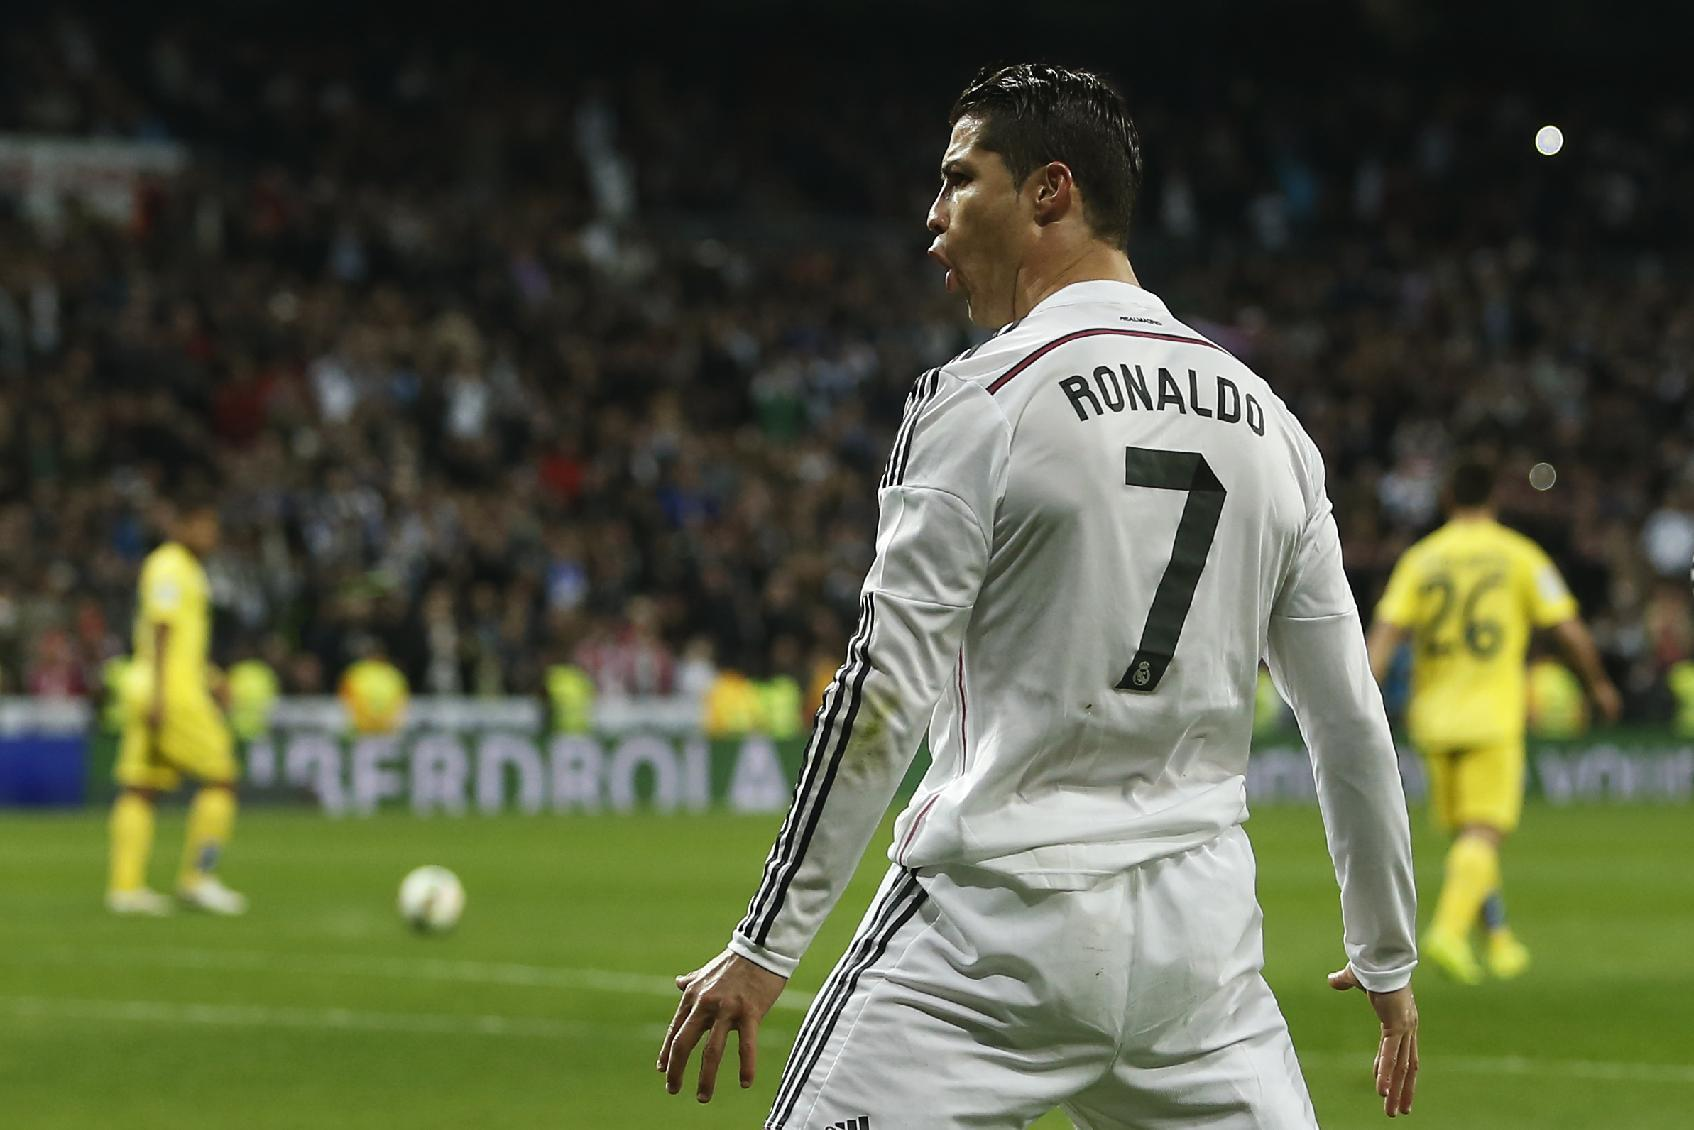 Real Madrid defends its league lead against Athletic Bilbao